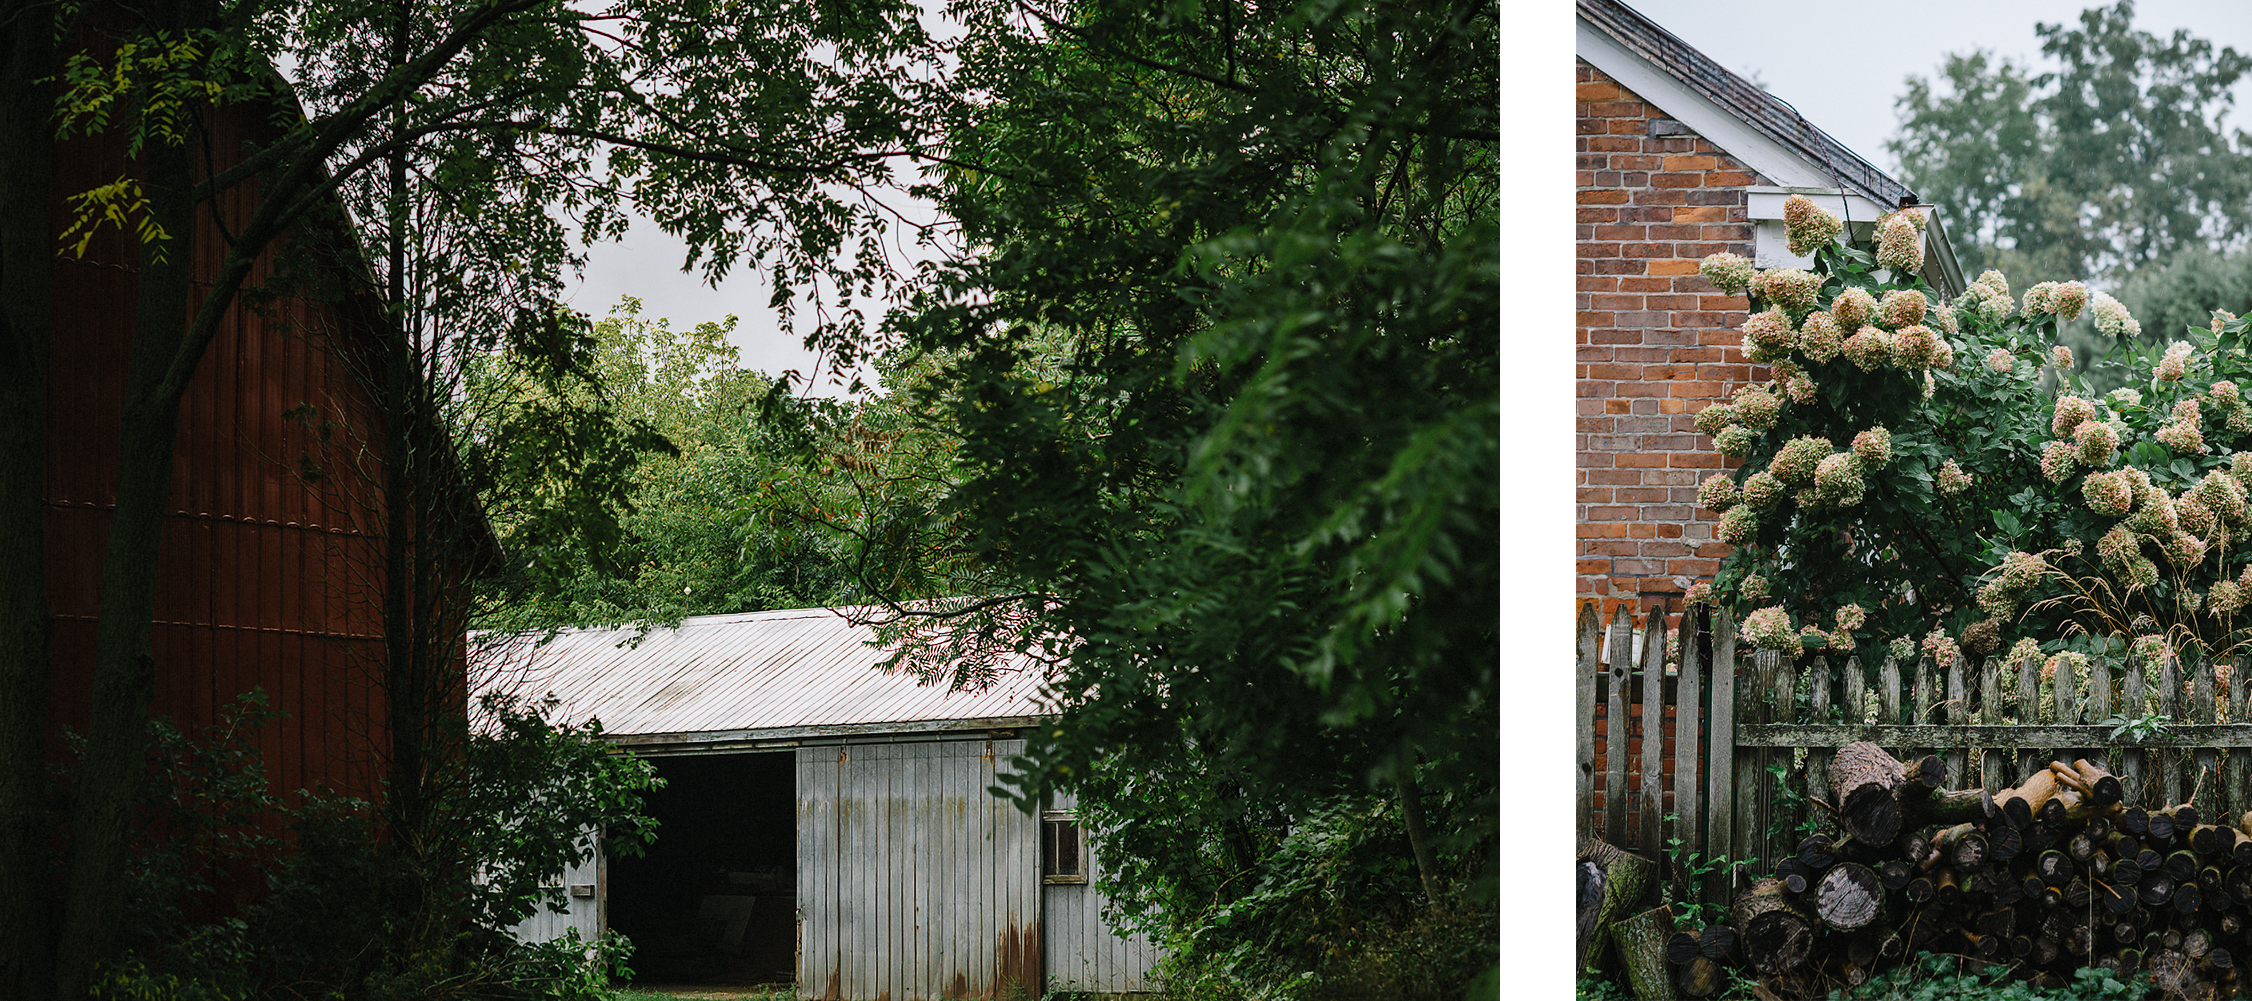 spread-3-Best-Moody-Vintage-Small-Town-Chapel-Wedding-Toronto-Ontario_-Guest-House-Plant-Detail.png